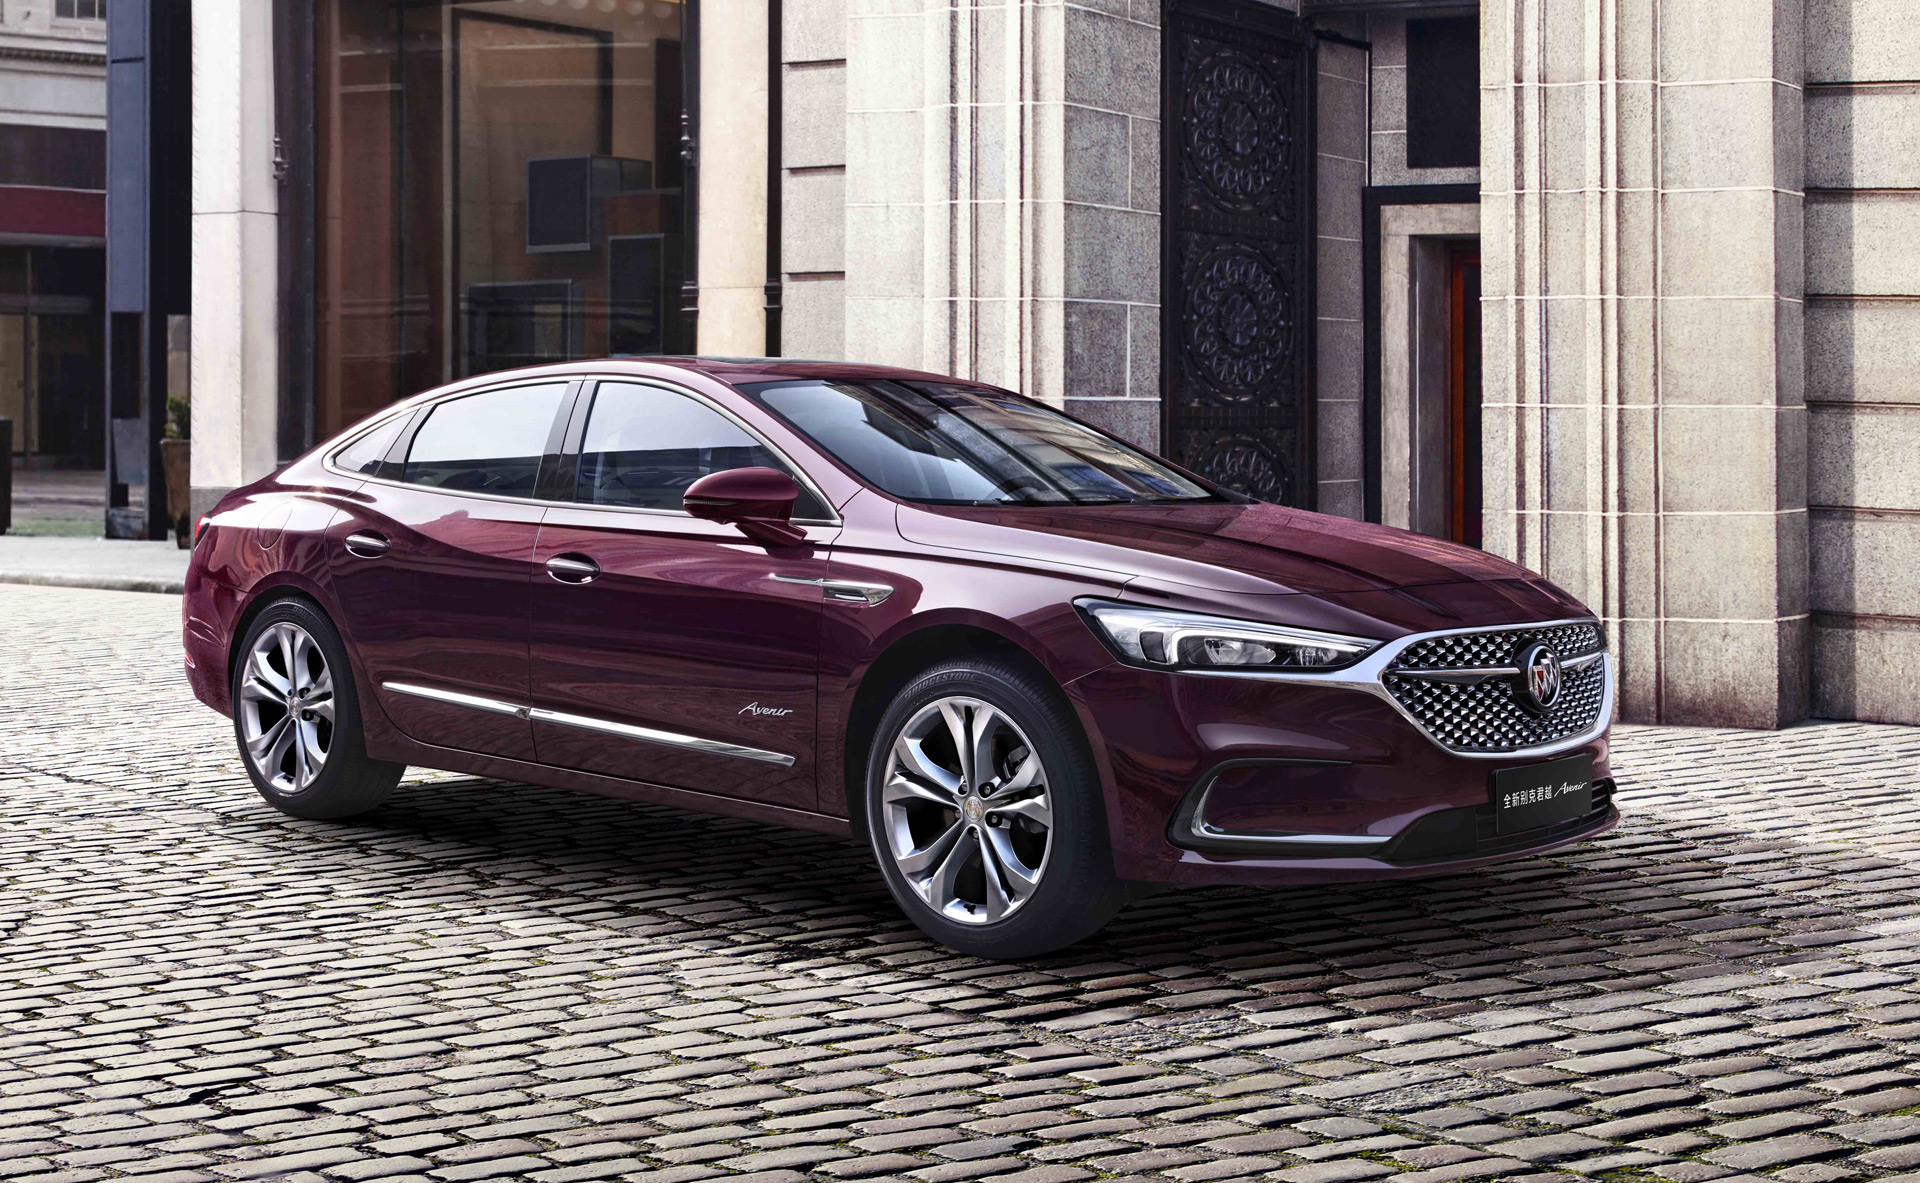 2020 Buick Lacrosse Made Handsome Just As It's Dropped In Us Is There A New 2021 Buick Lacrosse